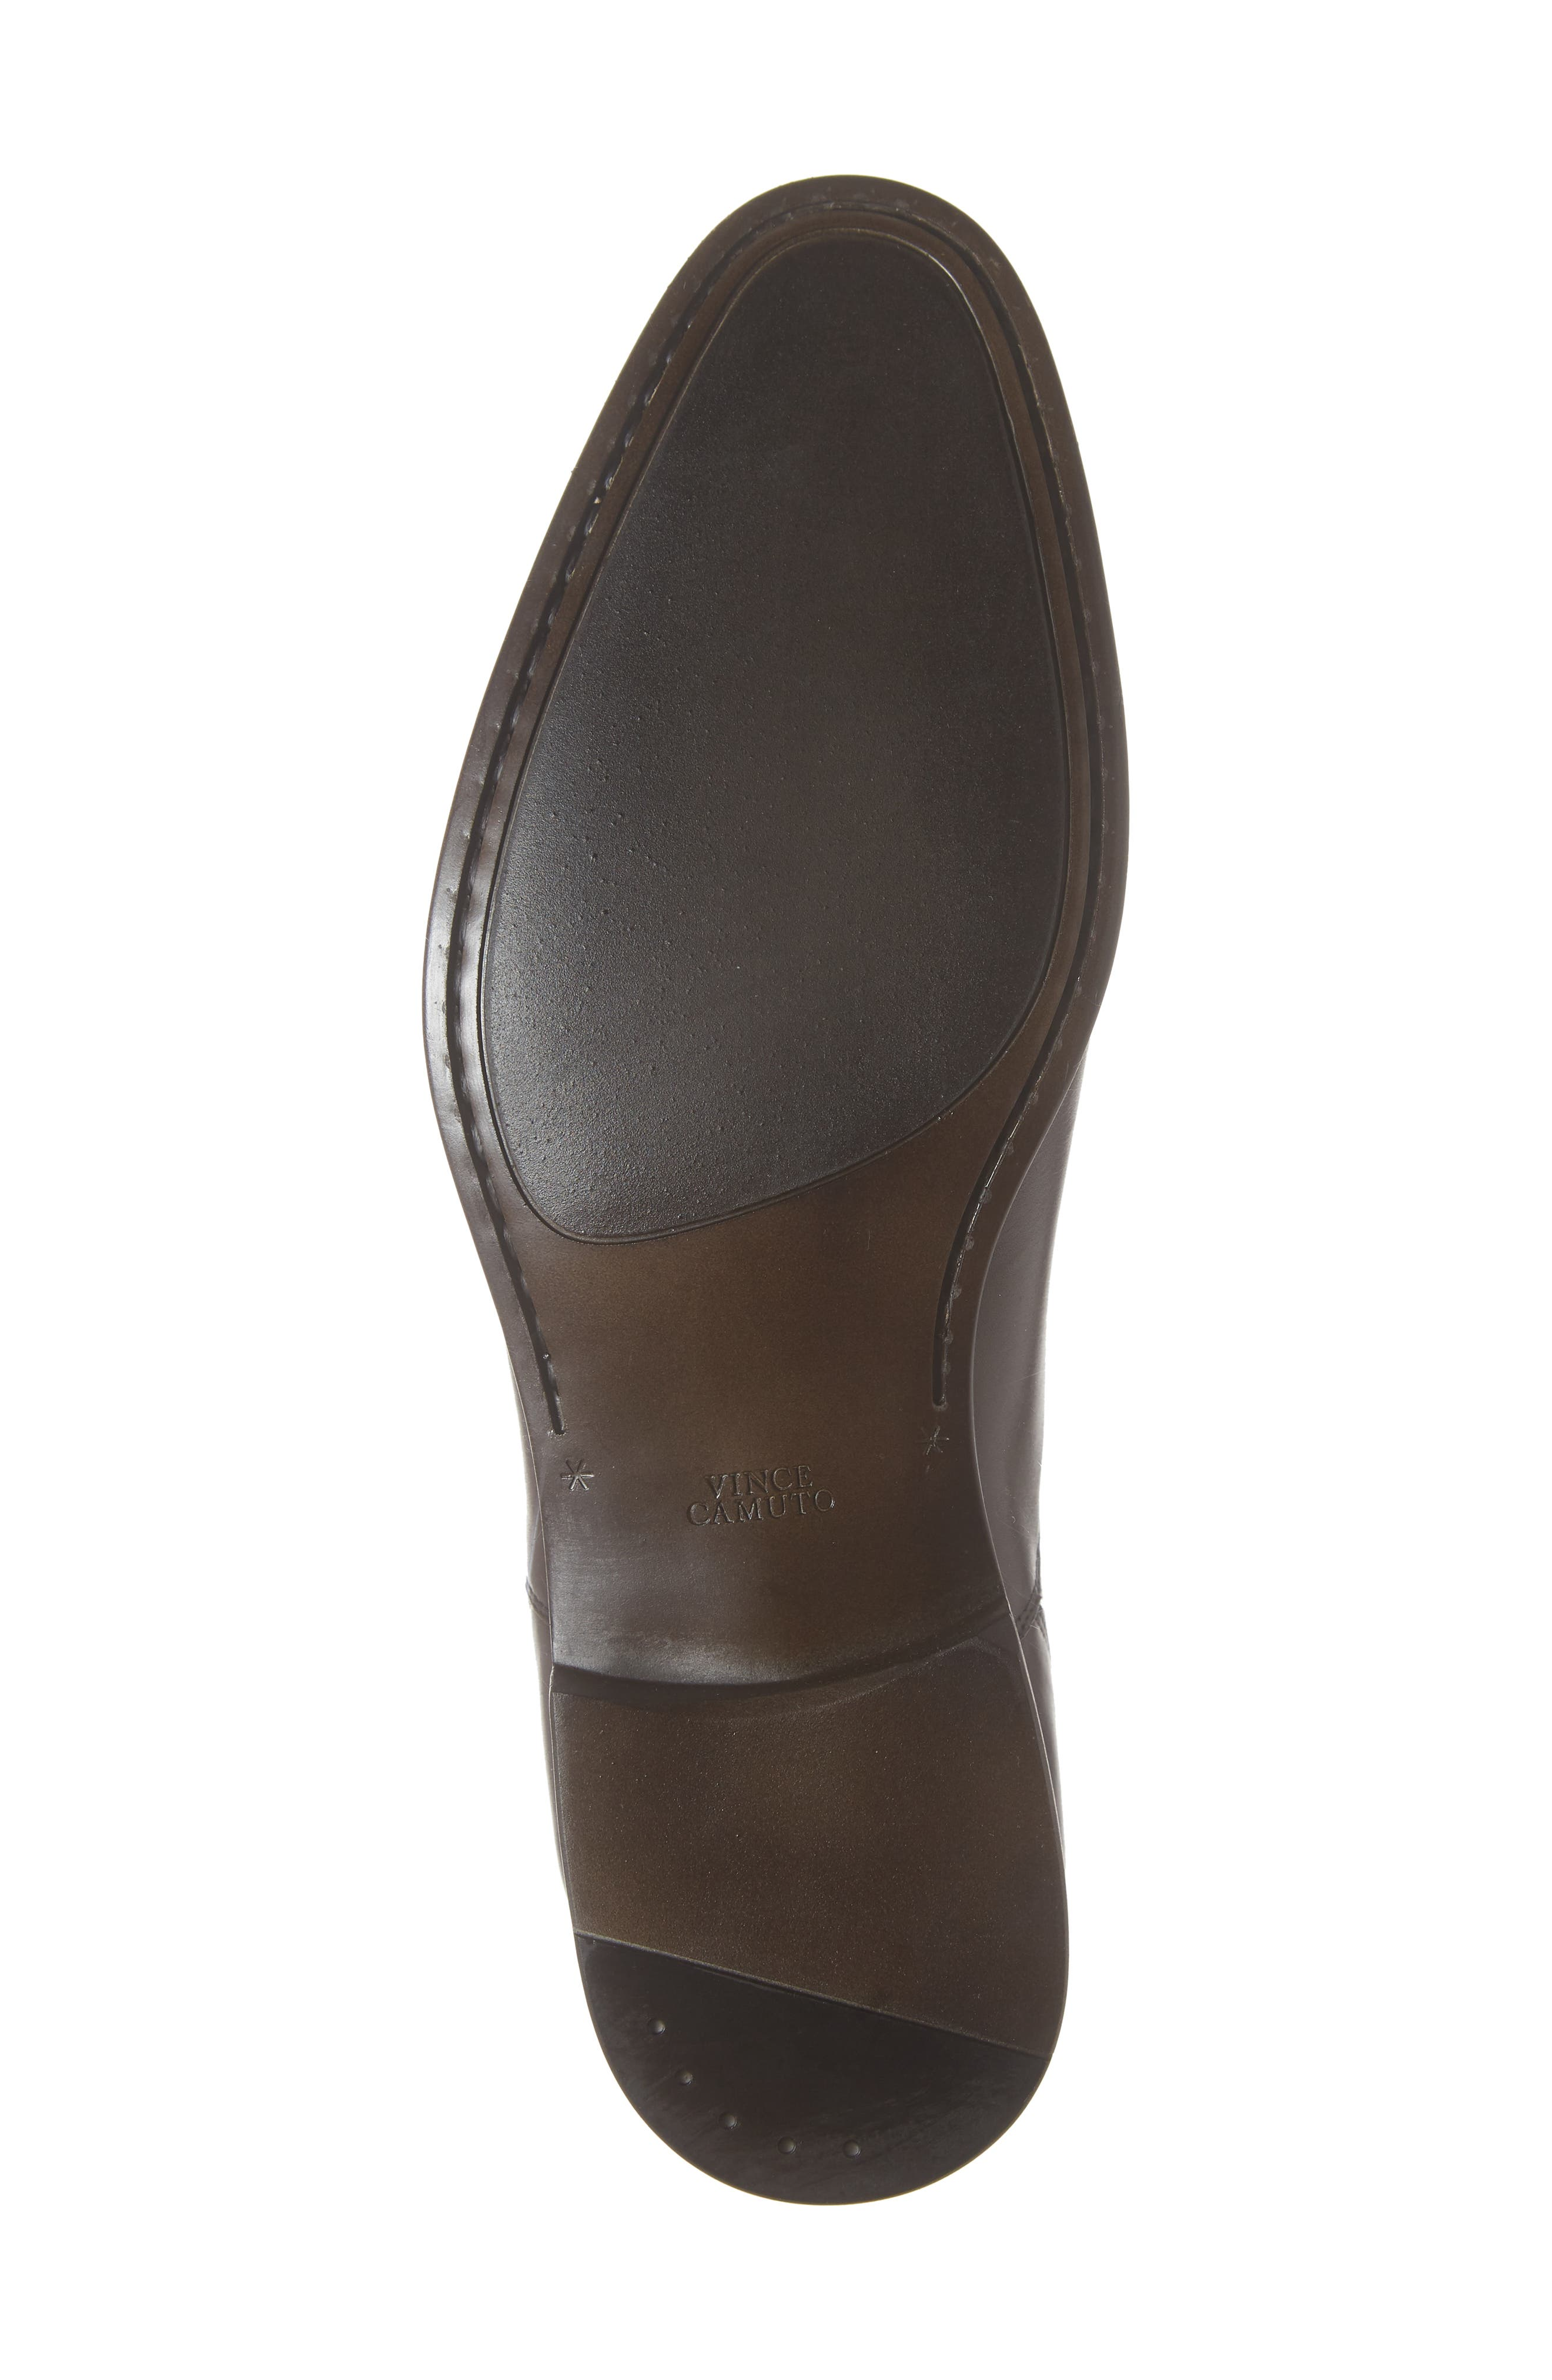 VINCE CAMUTO, Iven Cap Toe Oxford, Alternate thumbnail 6, color, DARK BROWN LEATHER